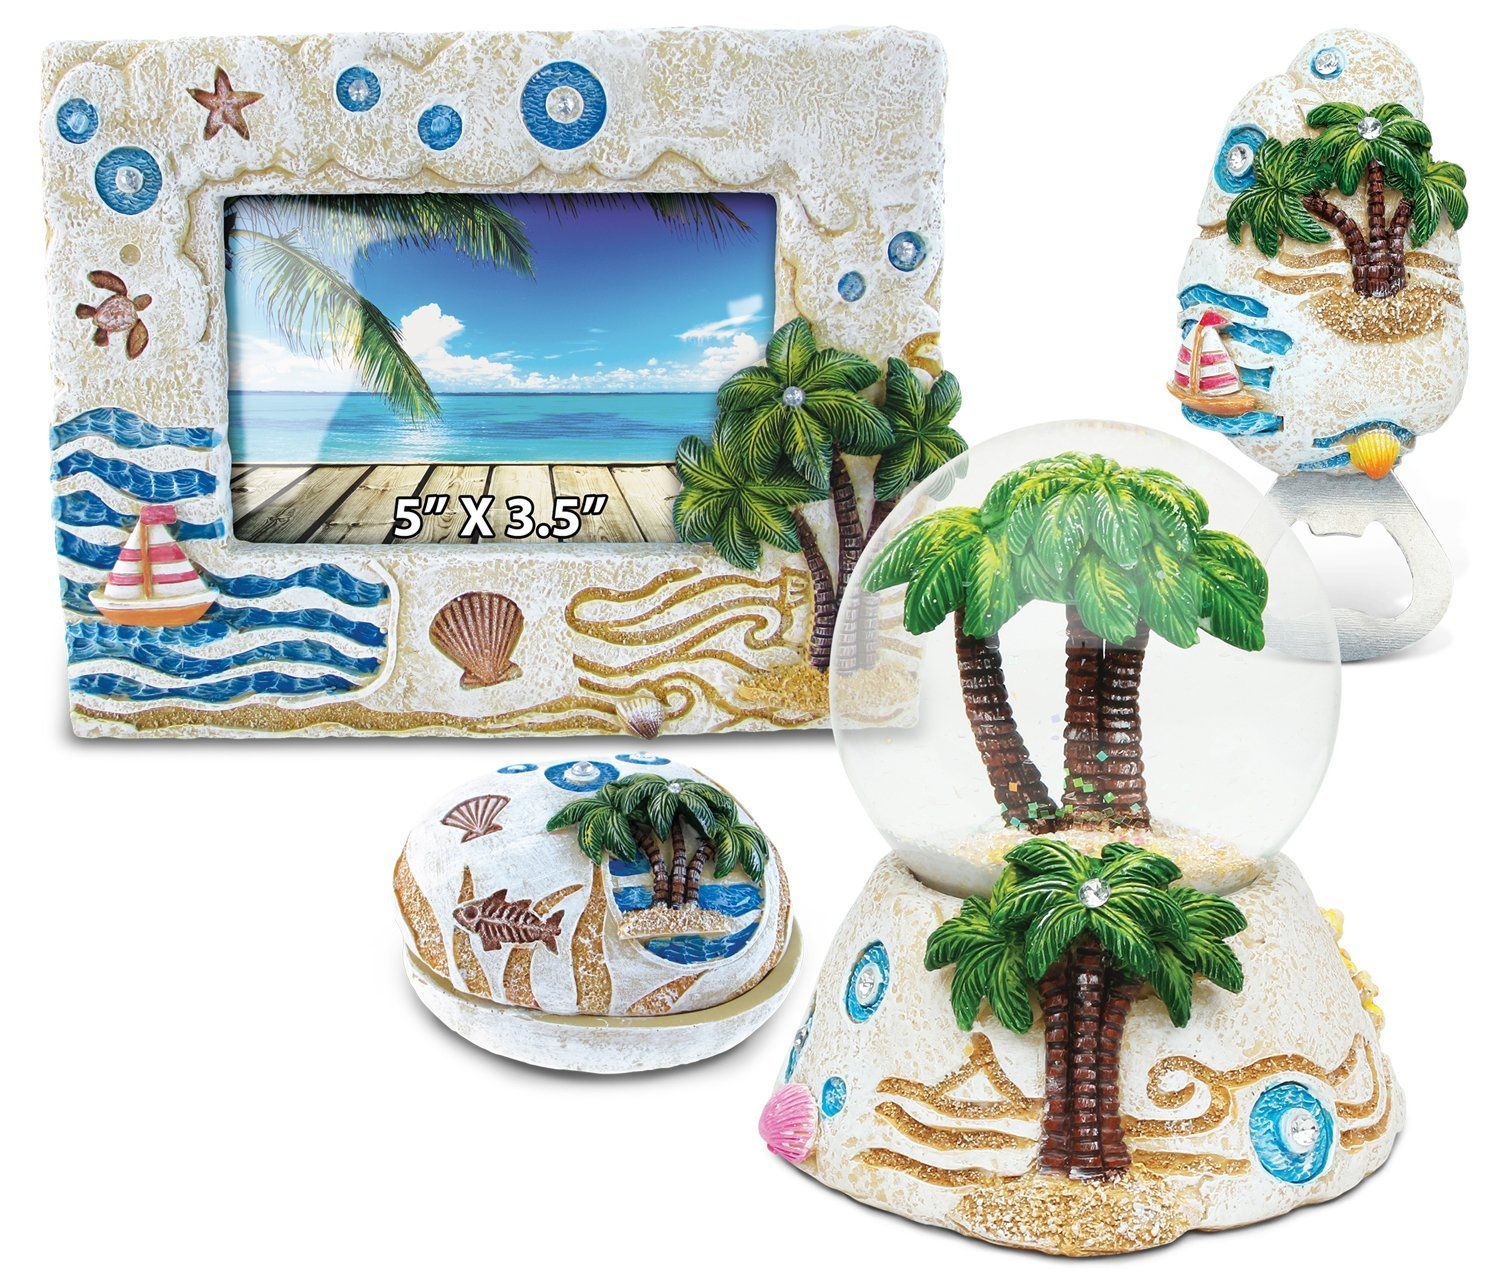 Puzzled Palm Tree Resin Stone Finish Collection including Picture/Photo Frame, Jewelry Box , Snow Globe, and Magnet Bottle Opener - Picture Size 5 by 3 - Unique Elegant Gift and Souvenir